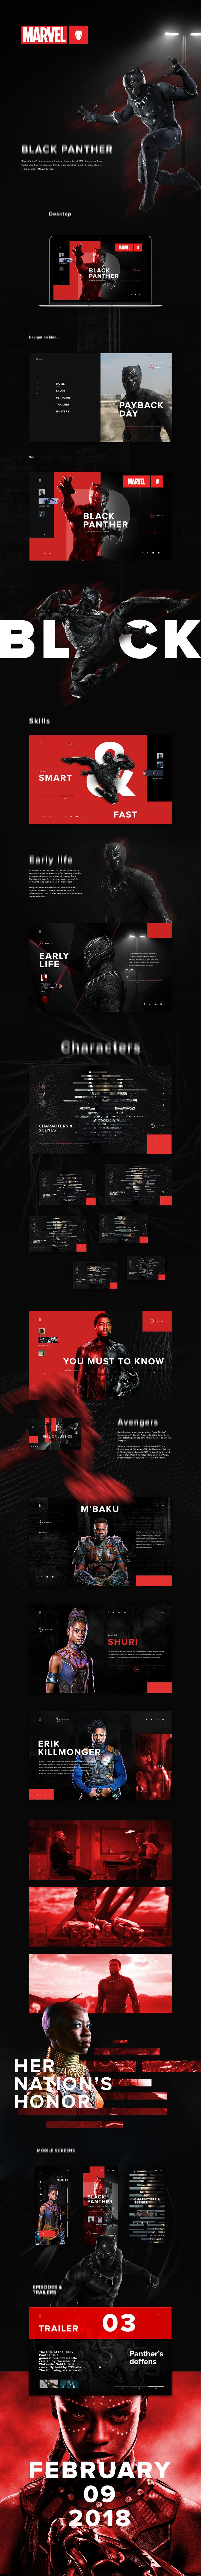 Awesome Web Design for Marvel Black Panther WHEN YOU SCROLL THE BLURRED FONT IS CLEAR WAT